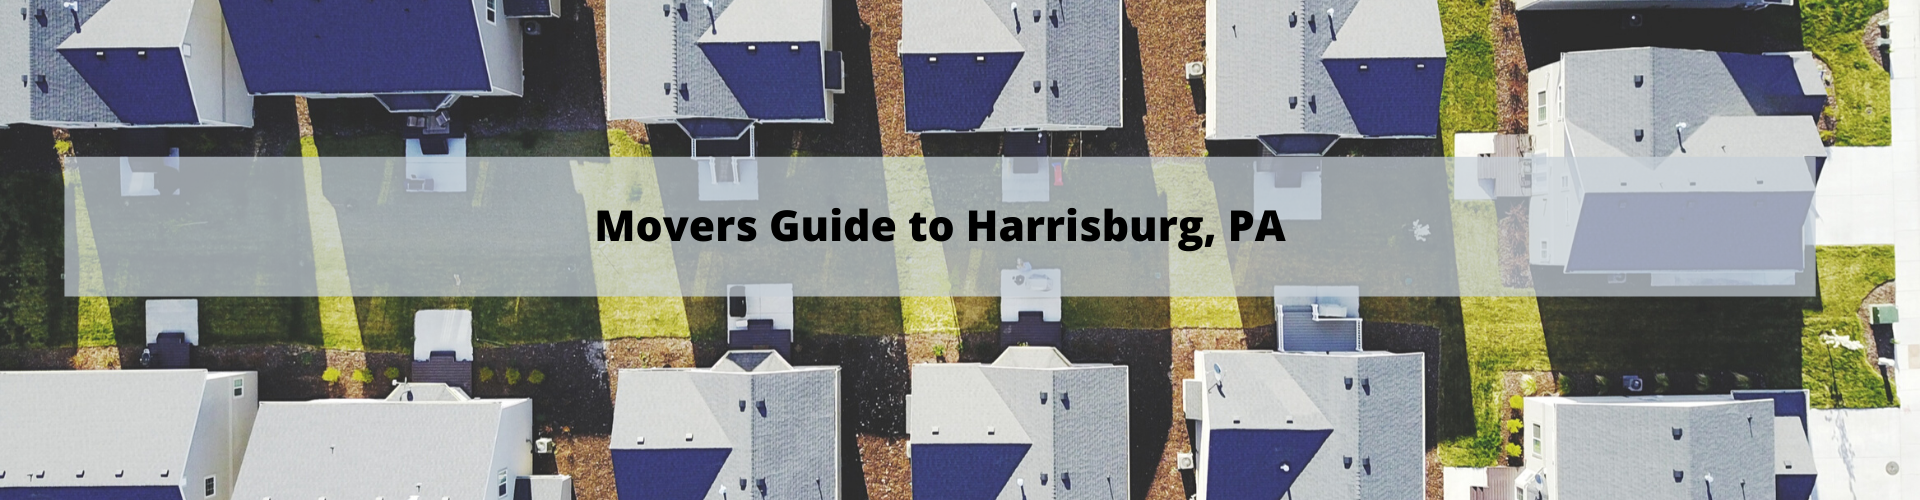 Movers Guide to Harrisburg PA